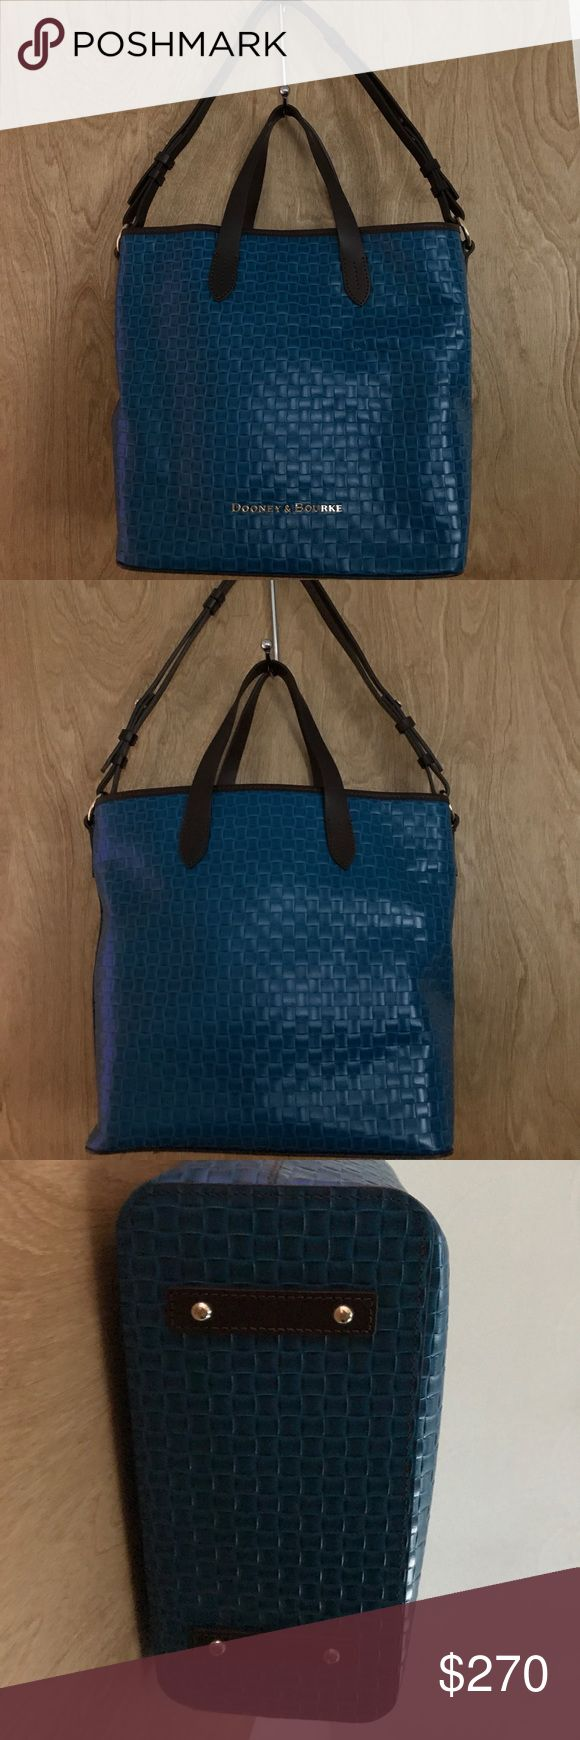 Dooney & Bourke Woven Embossed Leather Shopper Dooney & Bourke Woven Embossed Leather Shopper in Teal. Authentic Dooney & Bourke Shopper had embossed woven texture with dark leather trim & goldtone hardware. Snap closure & interior red lining. Interior has backwall zip & slip pockets, front wall has 2 slip pockets & key keeper & middle divider pocket has zip top closure. Measurements: 12.5 x 11.5 x 5.5 with 11in strap drop & handles are 5.5 drop. Gently used, small creases on front of bag…